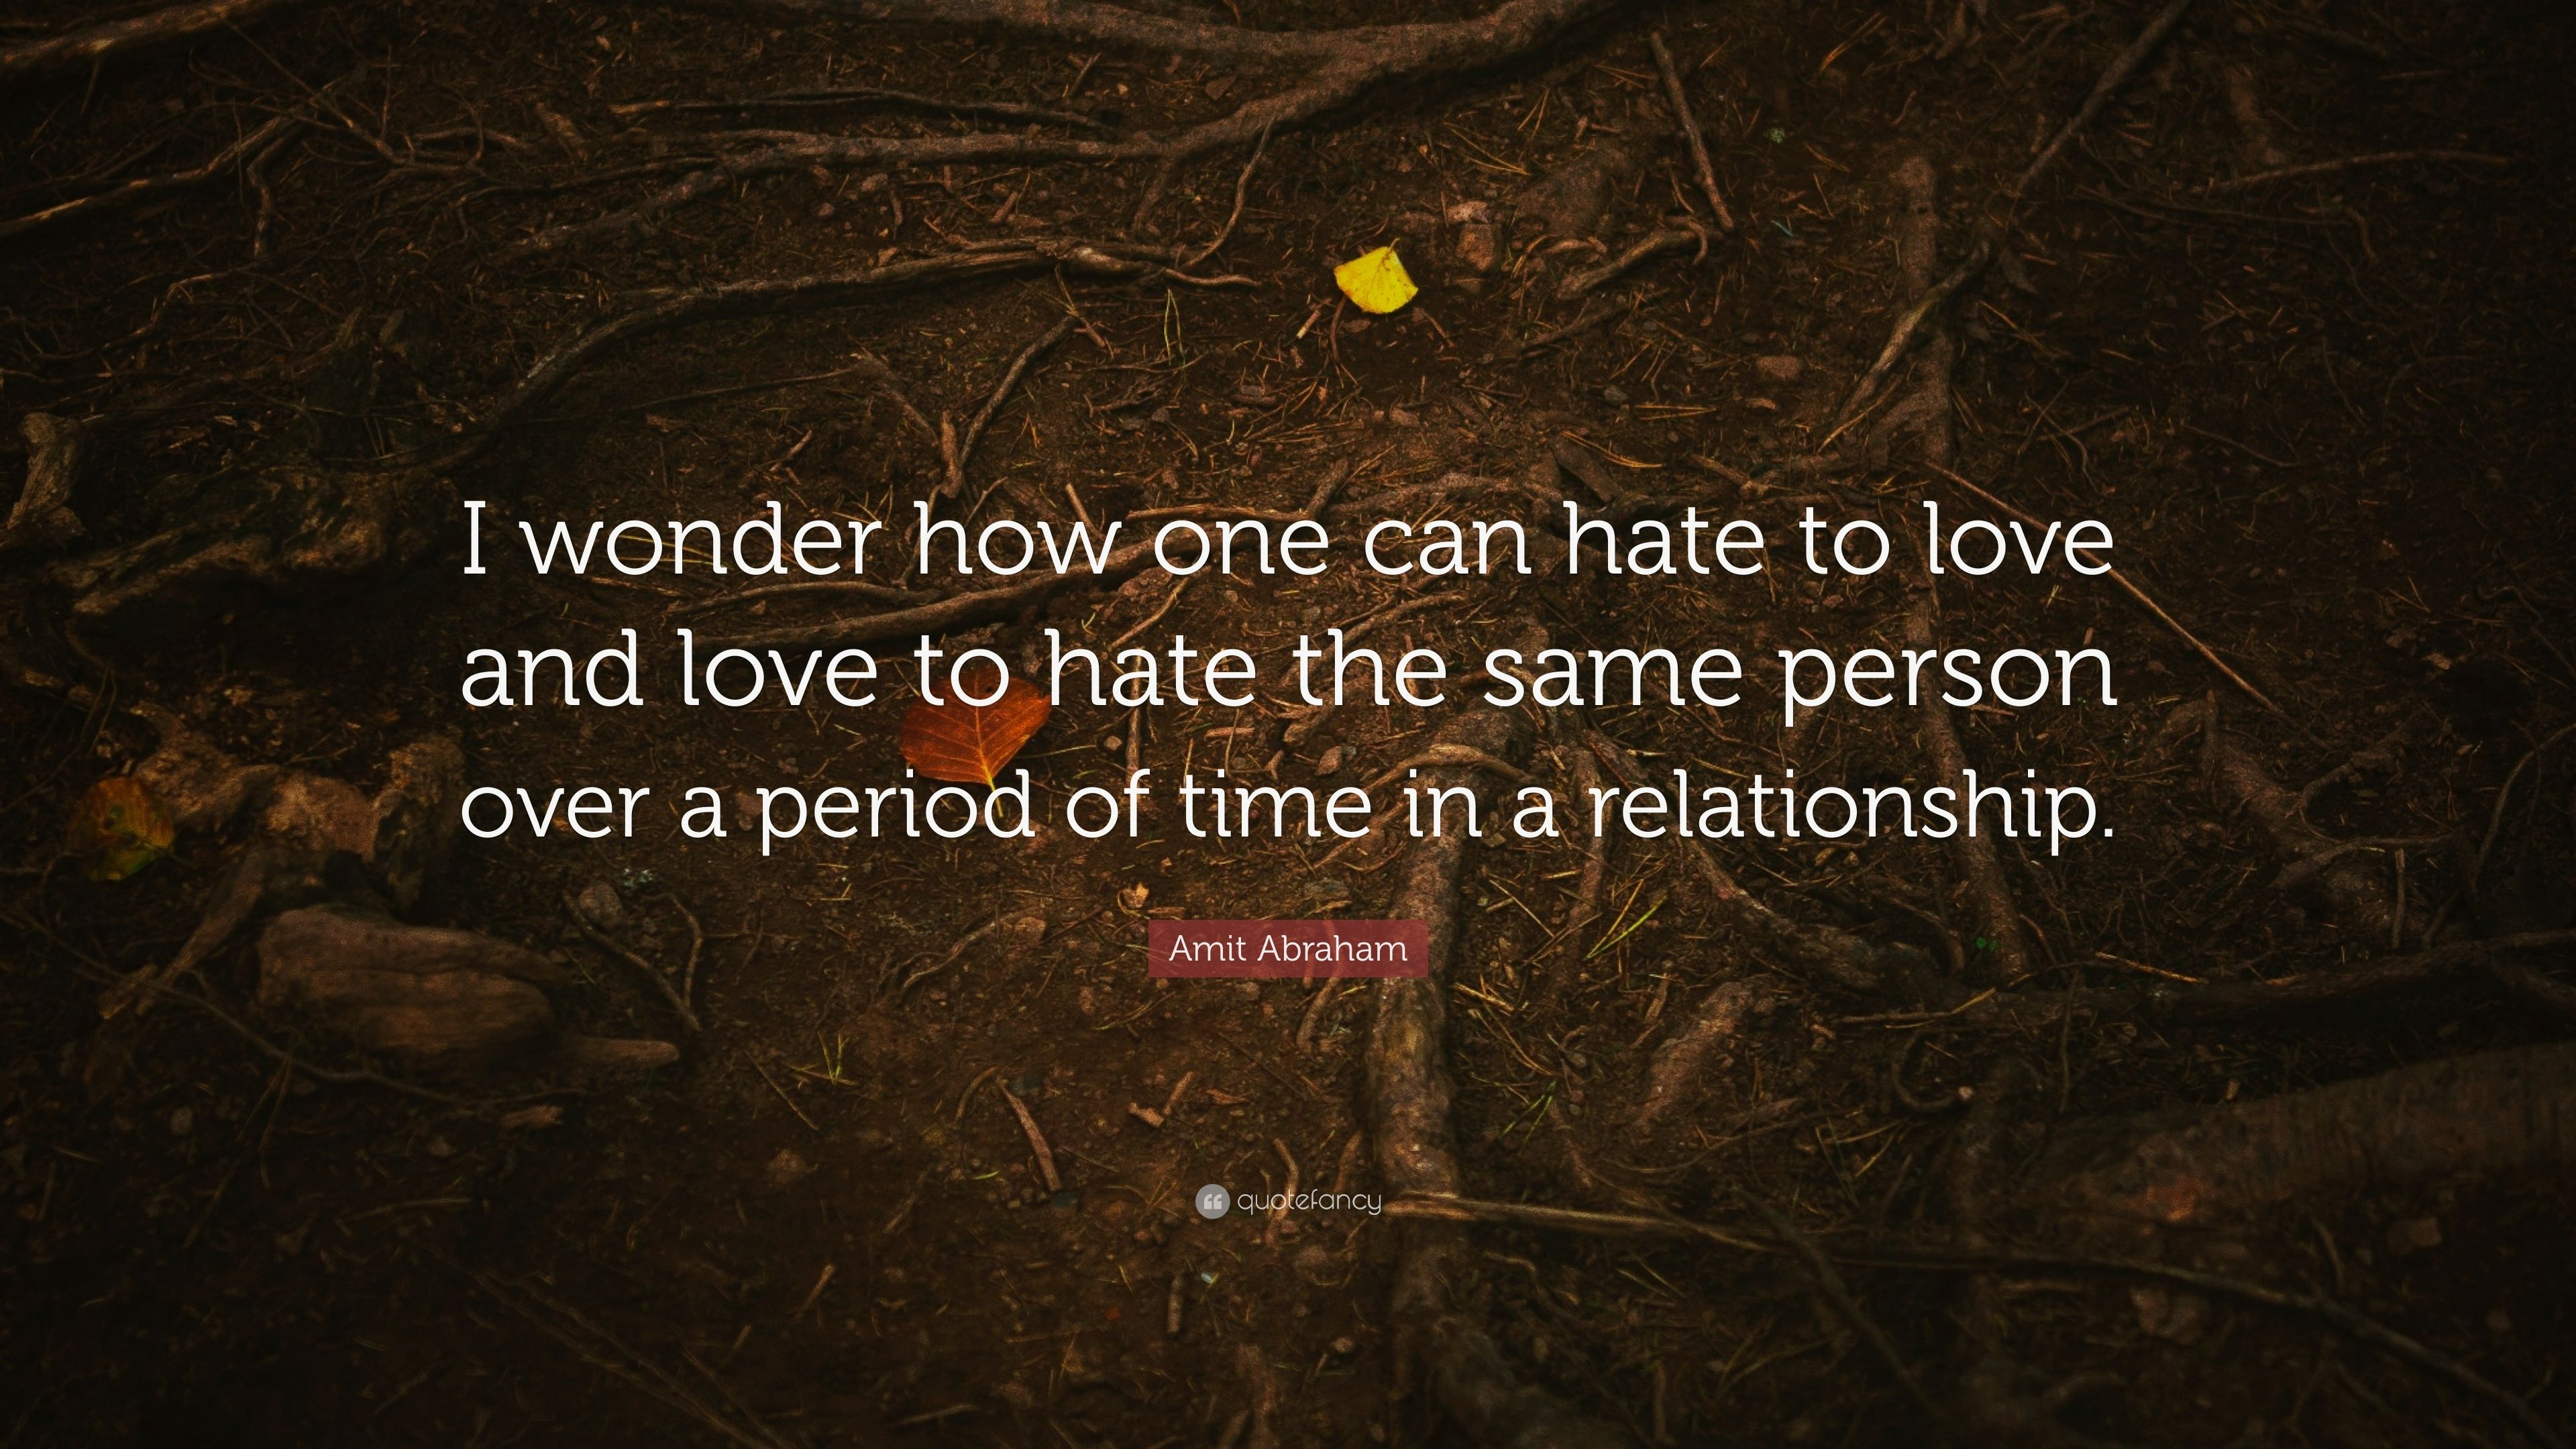 Amit Abraham Quote I Wonder How One Can Hate To Love And Love To